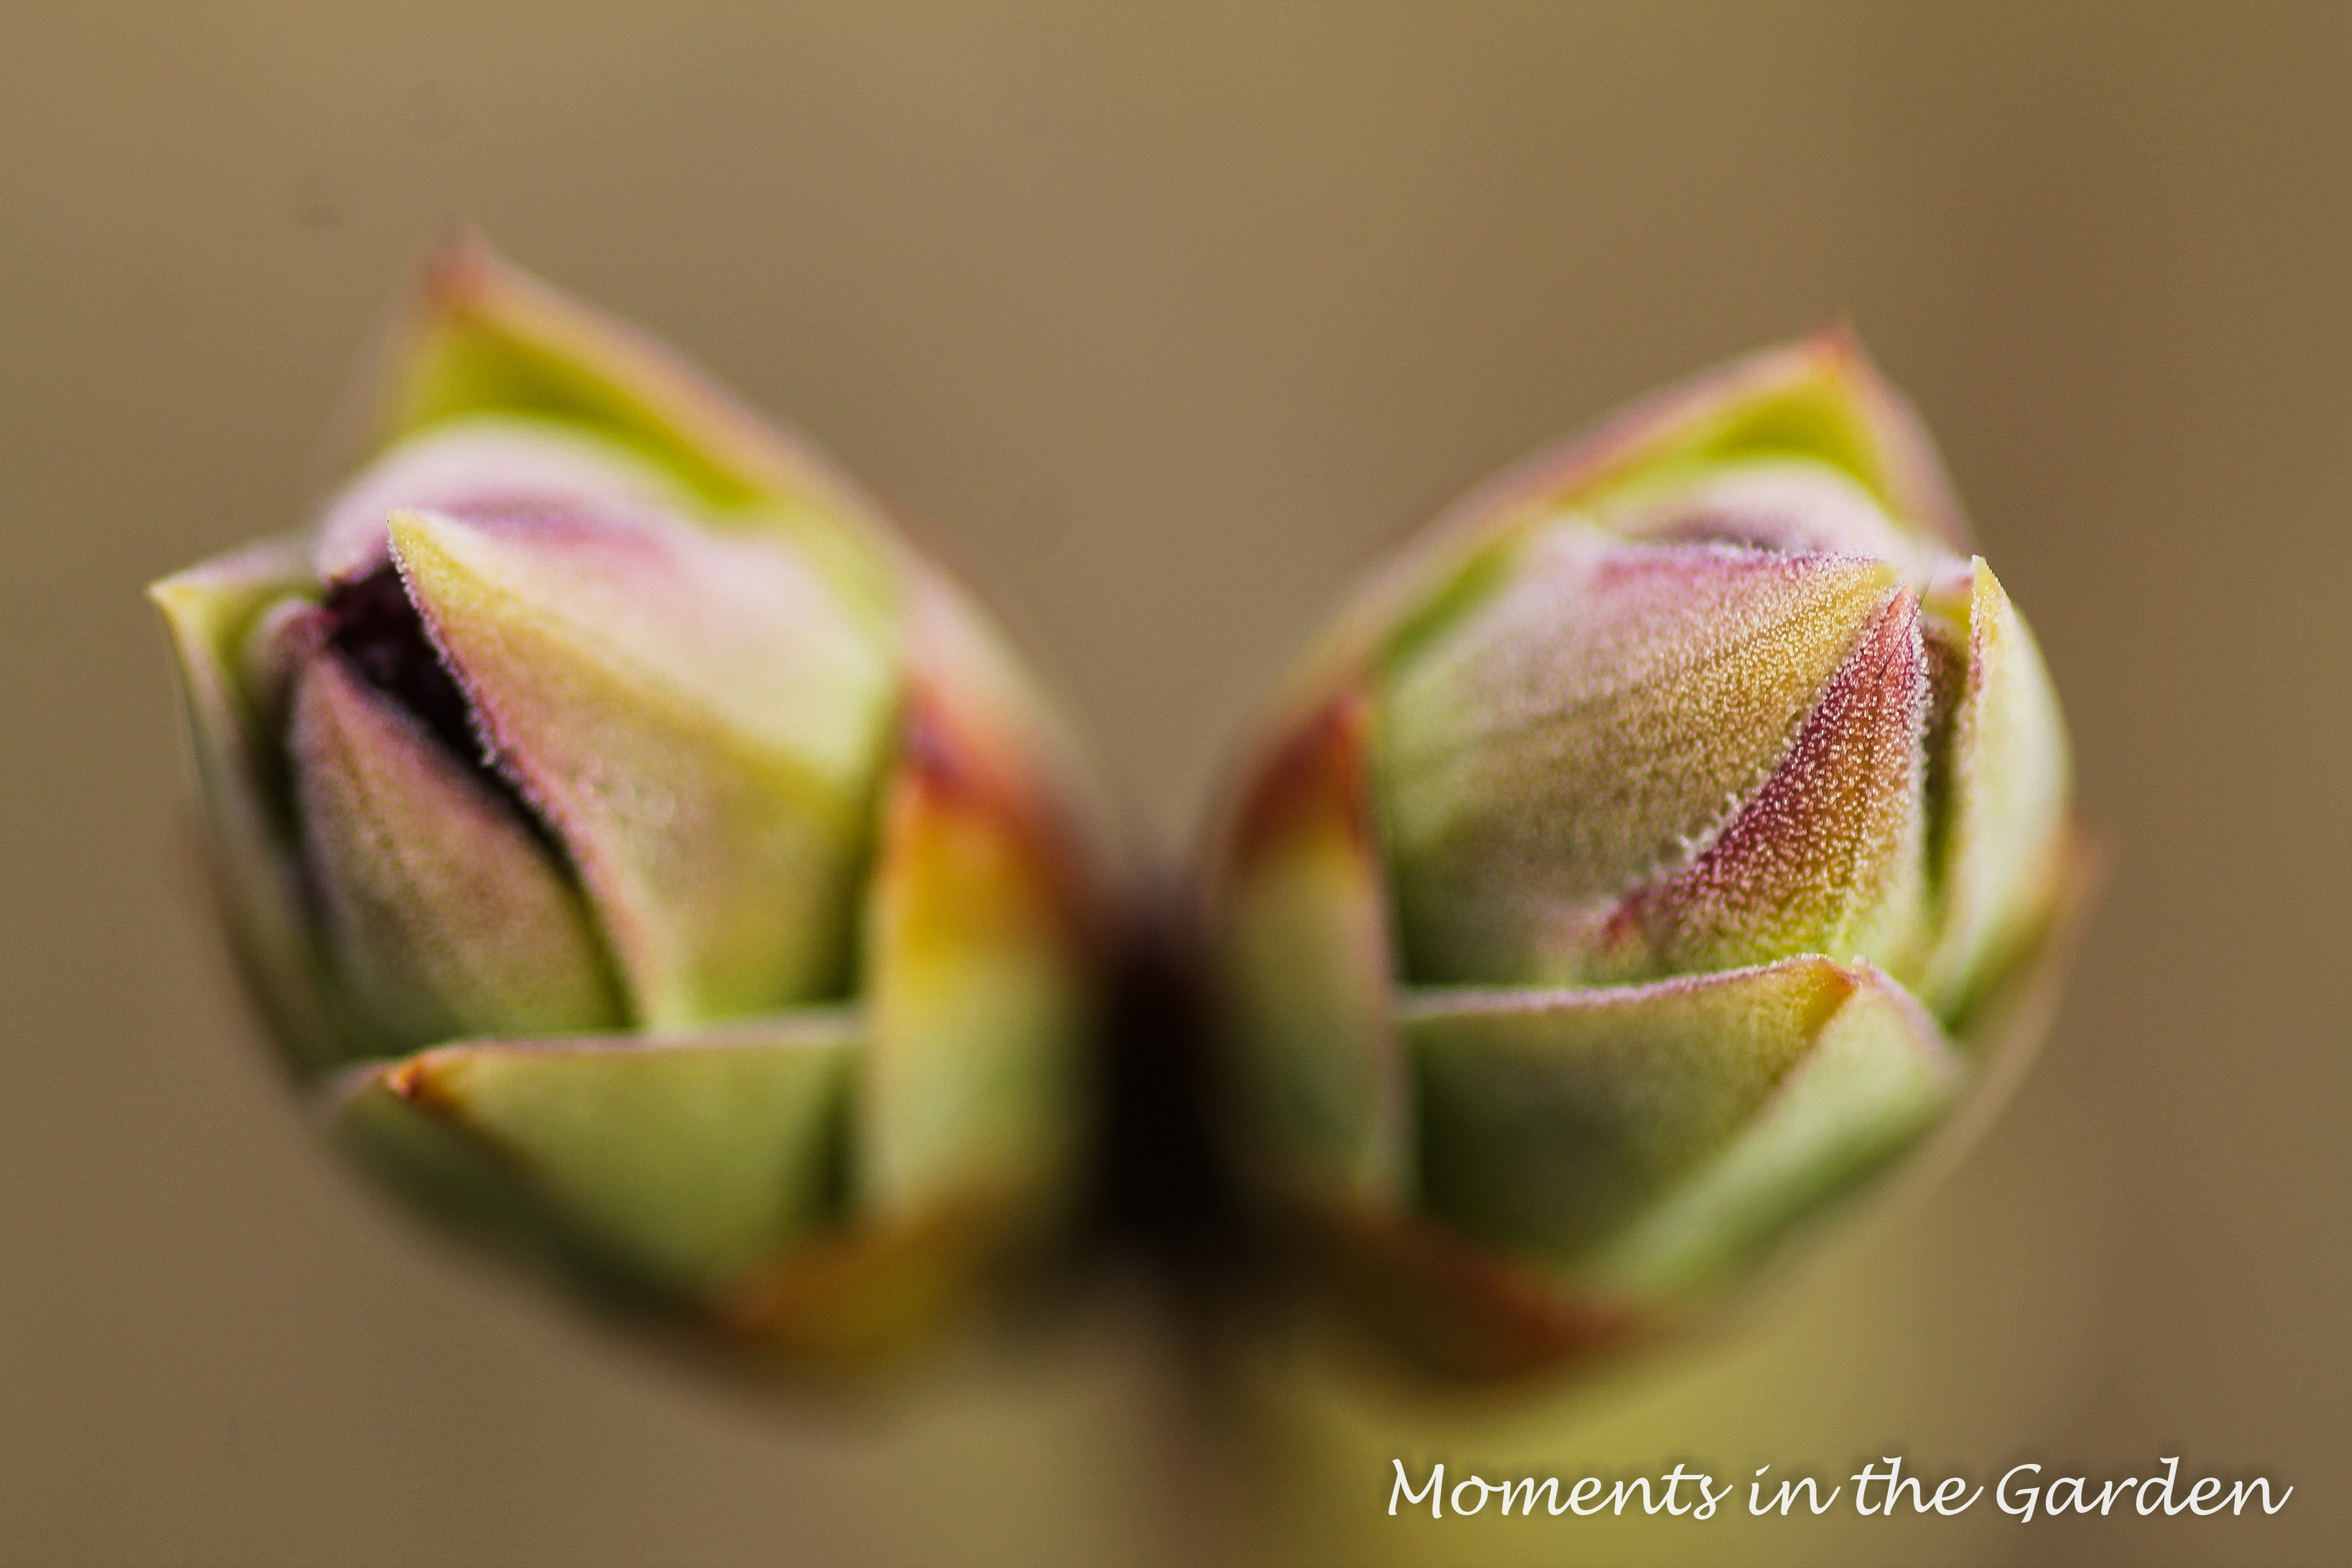 Buds Appearing - MOMENTS IN THE GARDEN PHOTOGRAPHY